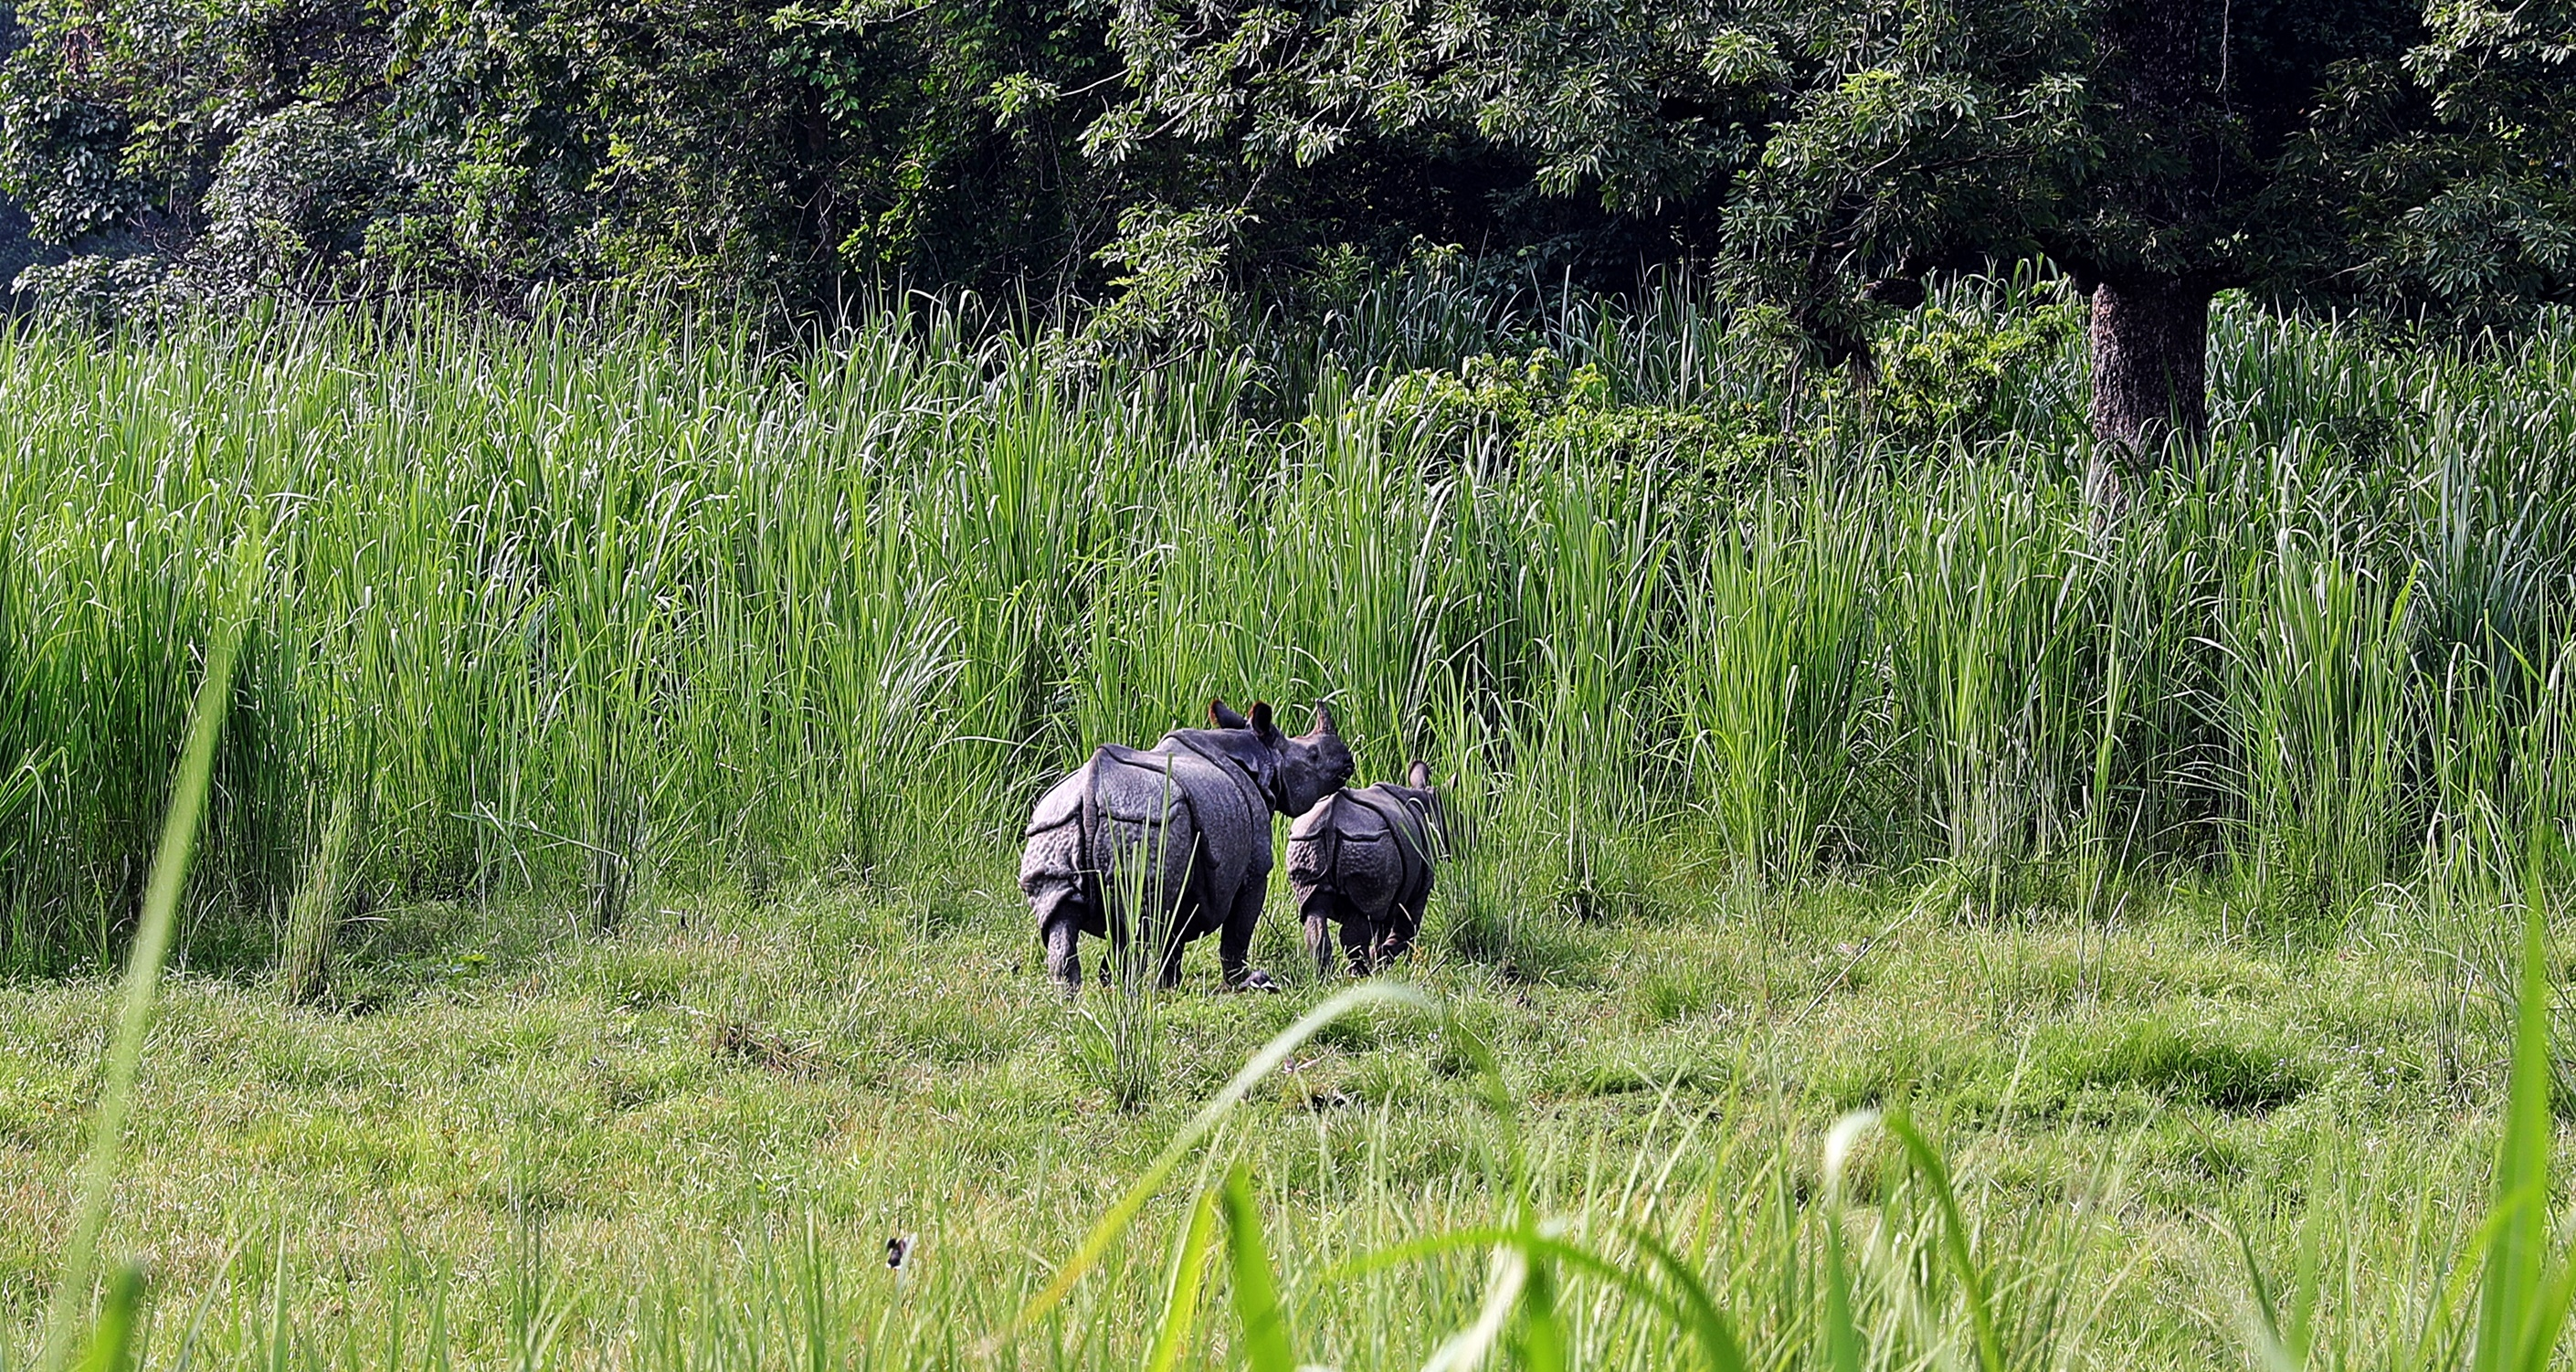 One-horned rhino mother and baby with armour